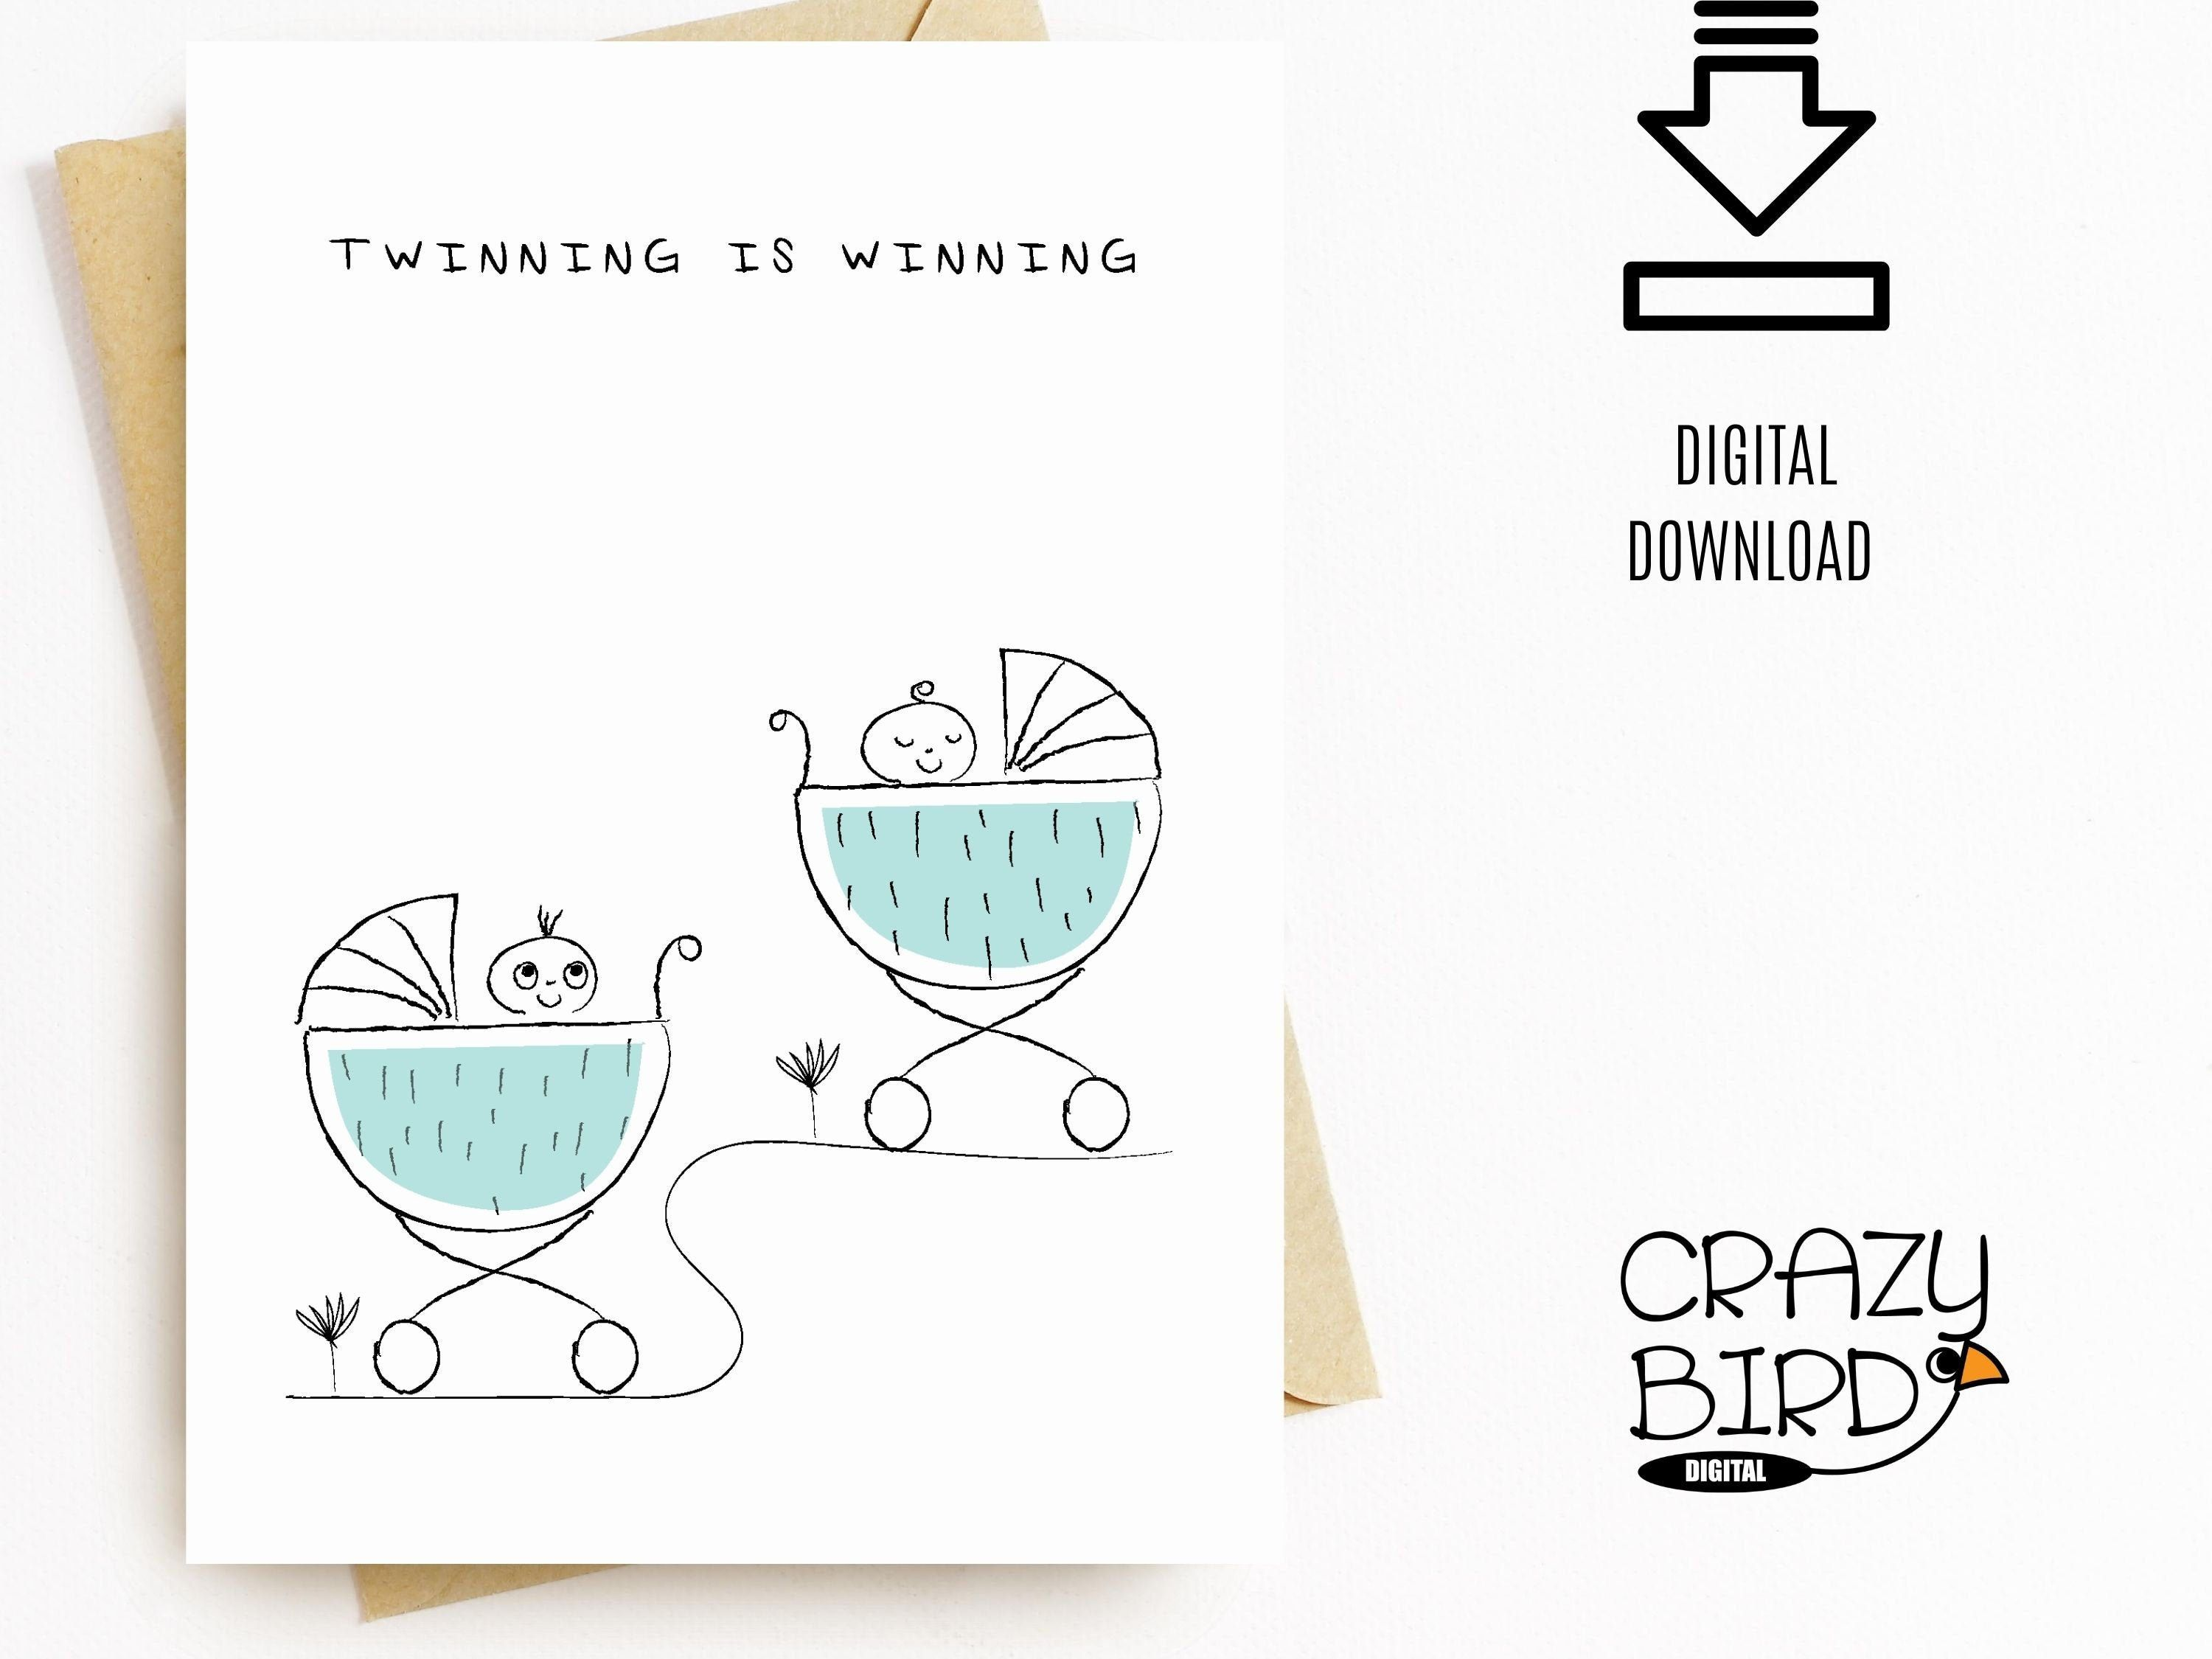 Twin baby boy and girl card-New baby twins card-Twins congratulations card-Welcome twins card-Baby shower twins card-Printable-Downloadable